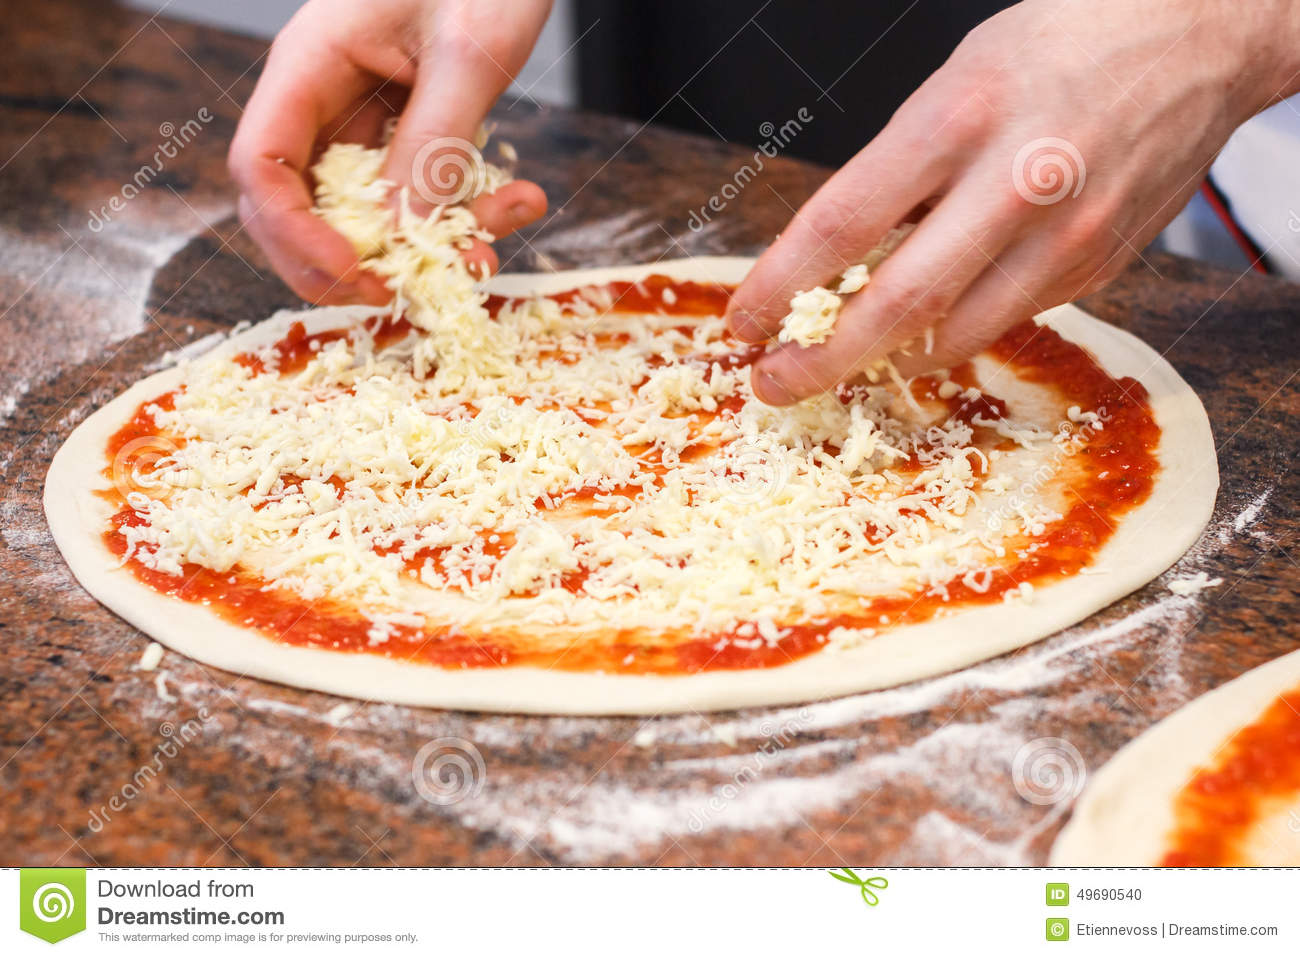 How to Spread Pizza Dough